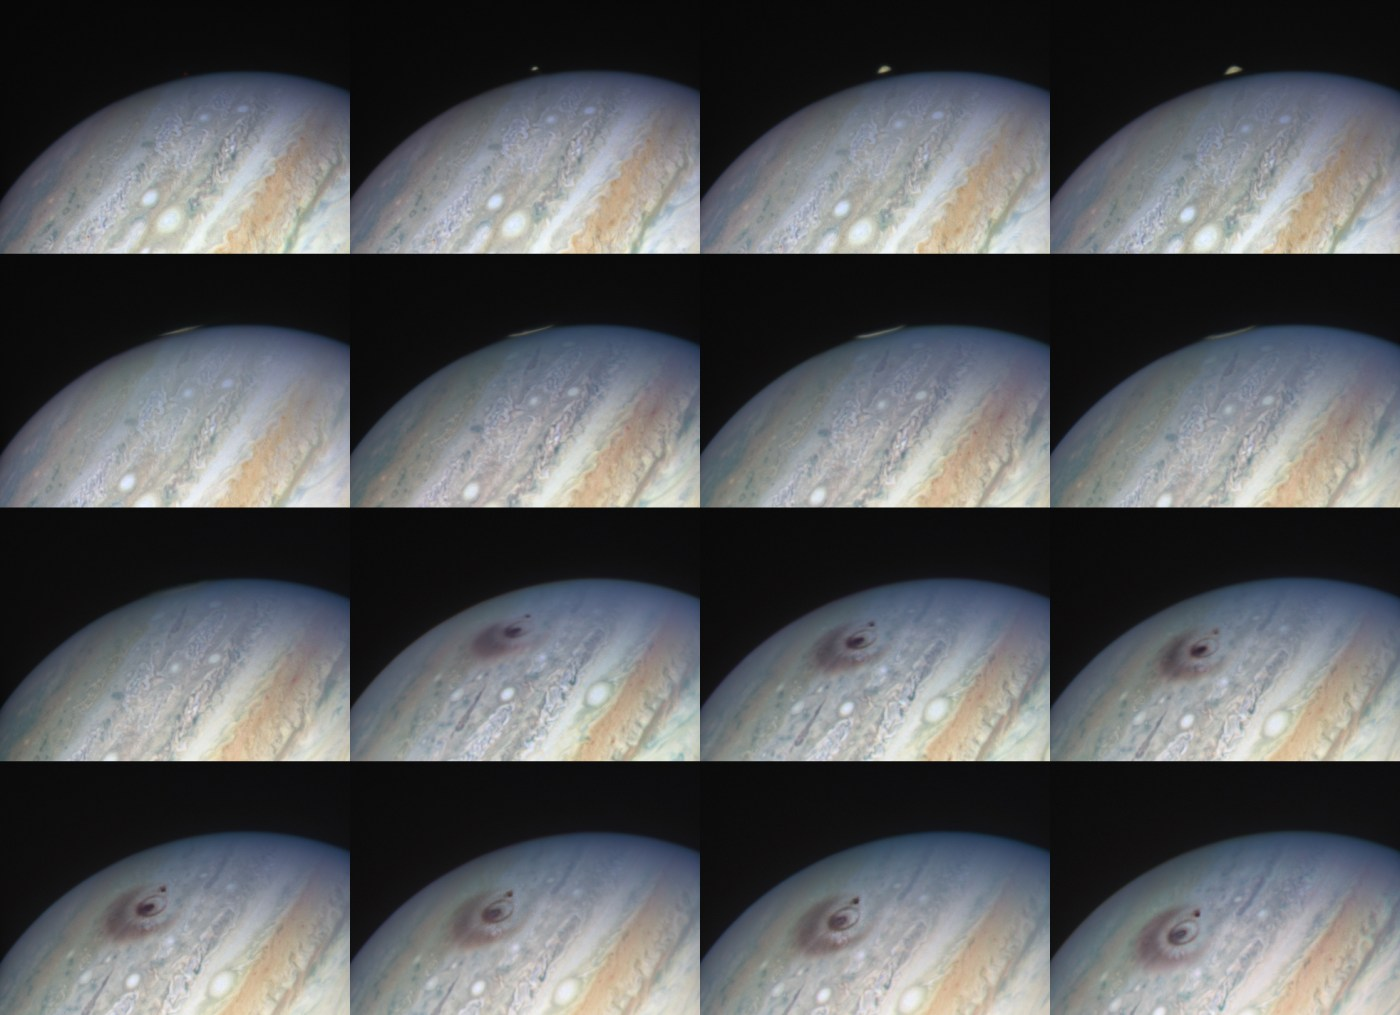 A grid of individual animation frames showing the results of a piece of the Shoemaker-Levy 9 comet impacting Jupiter, creating a plume, and leaving a dark scar across the cloud tops.